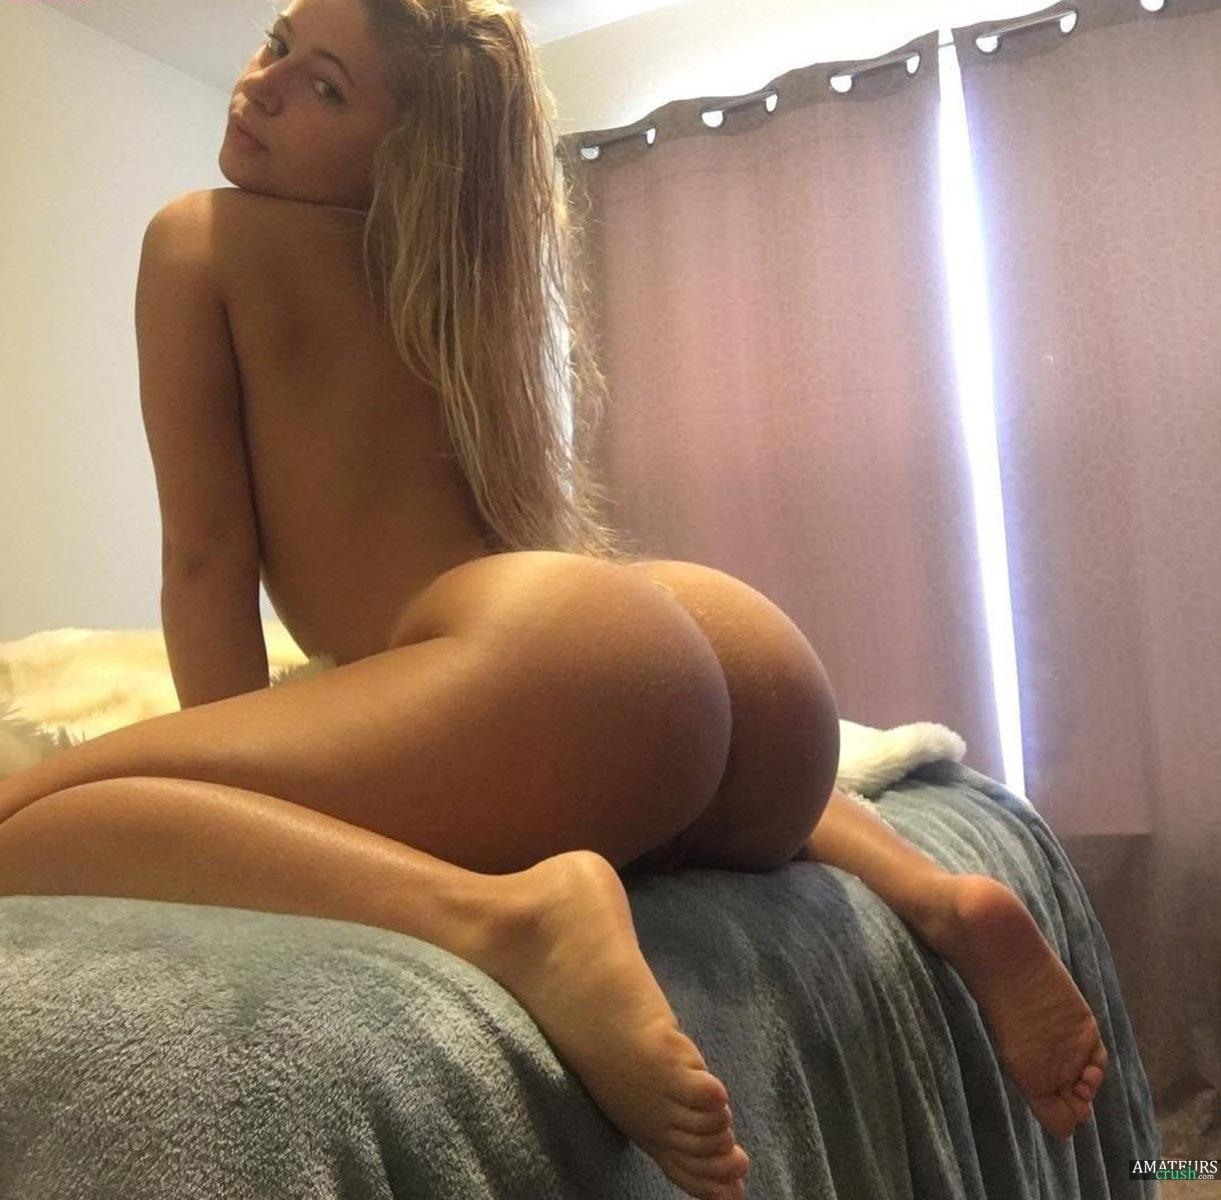 Images of girls butts nude